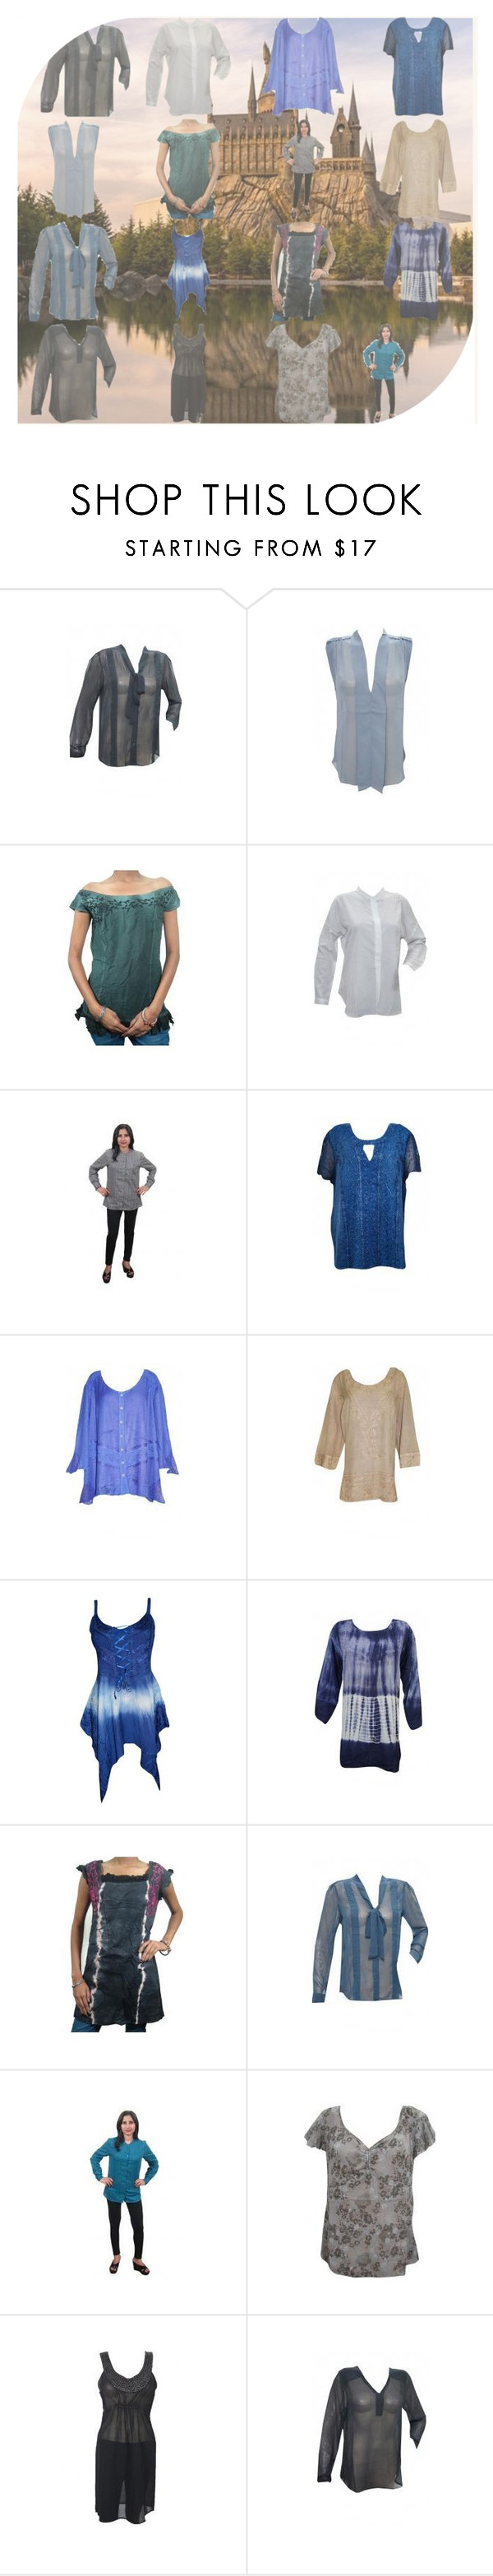 """""""Fashion Top"""" by era-chandok ❤ liked on Polyvore"""